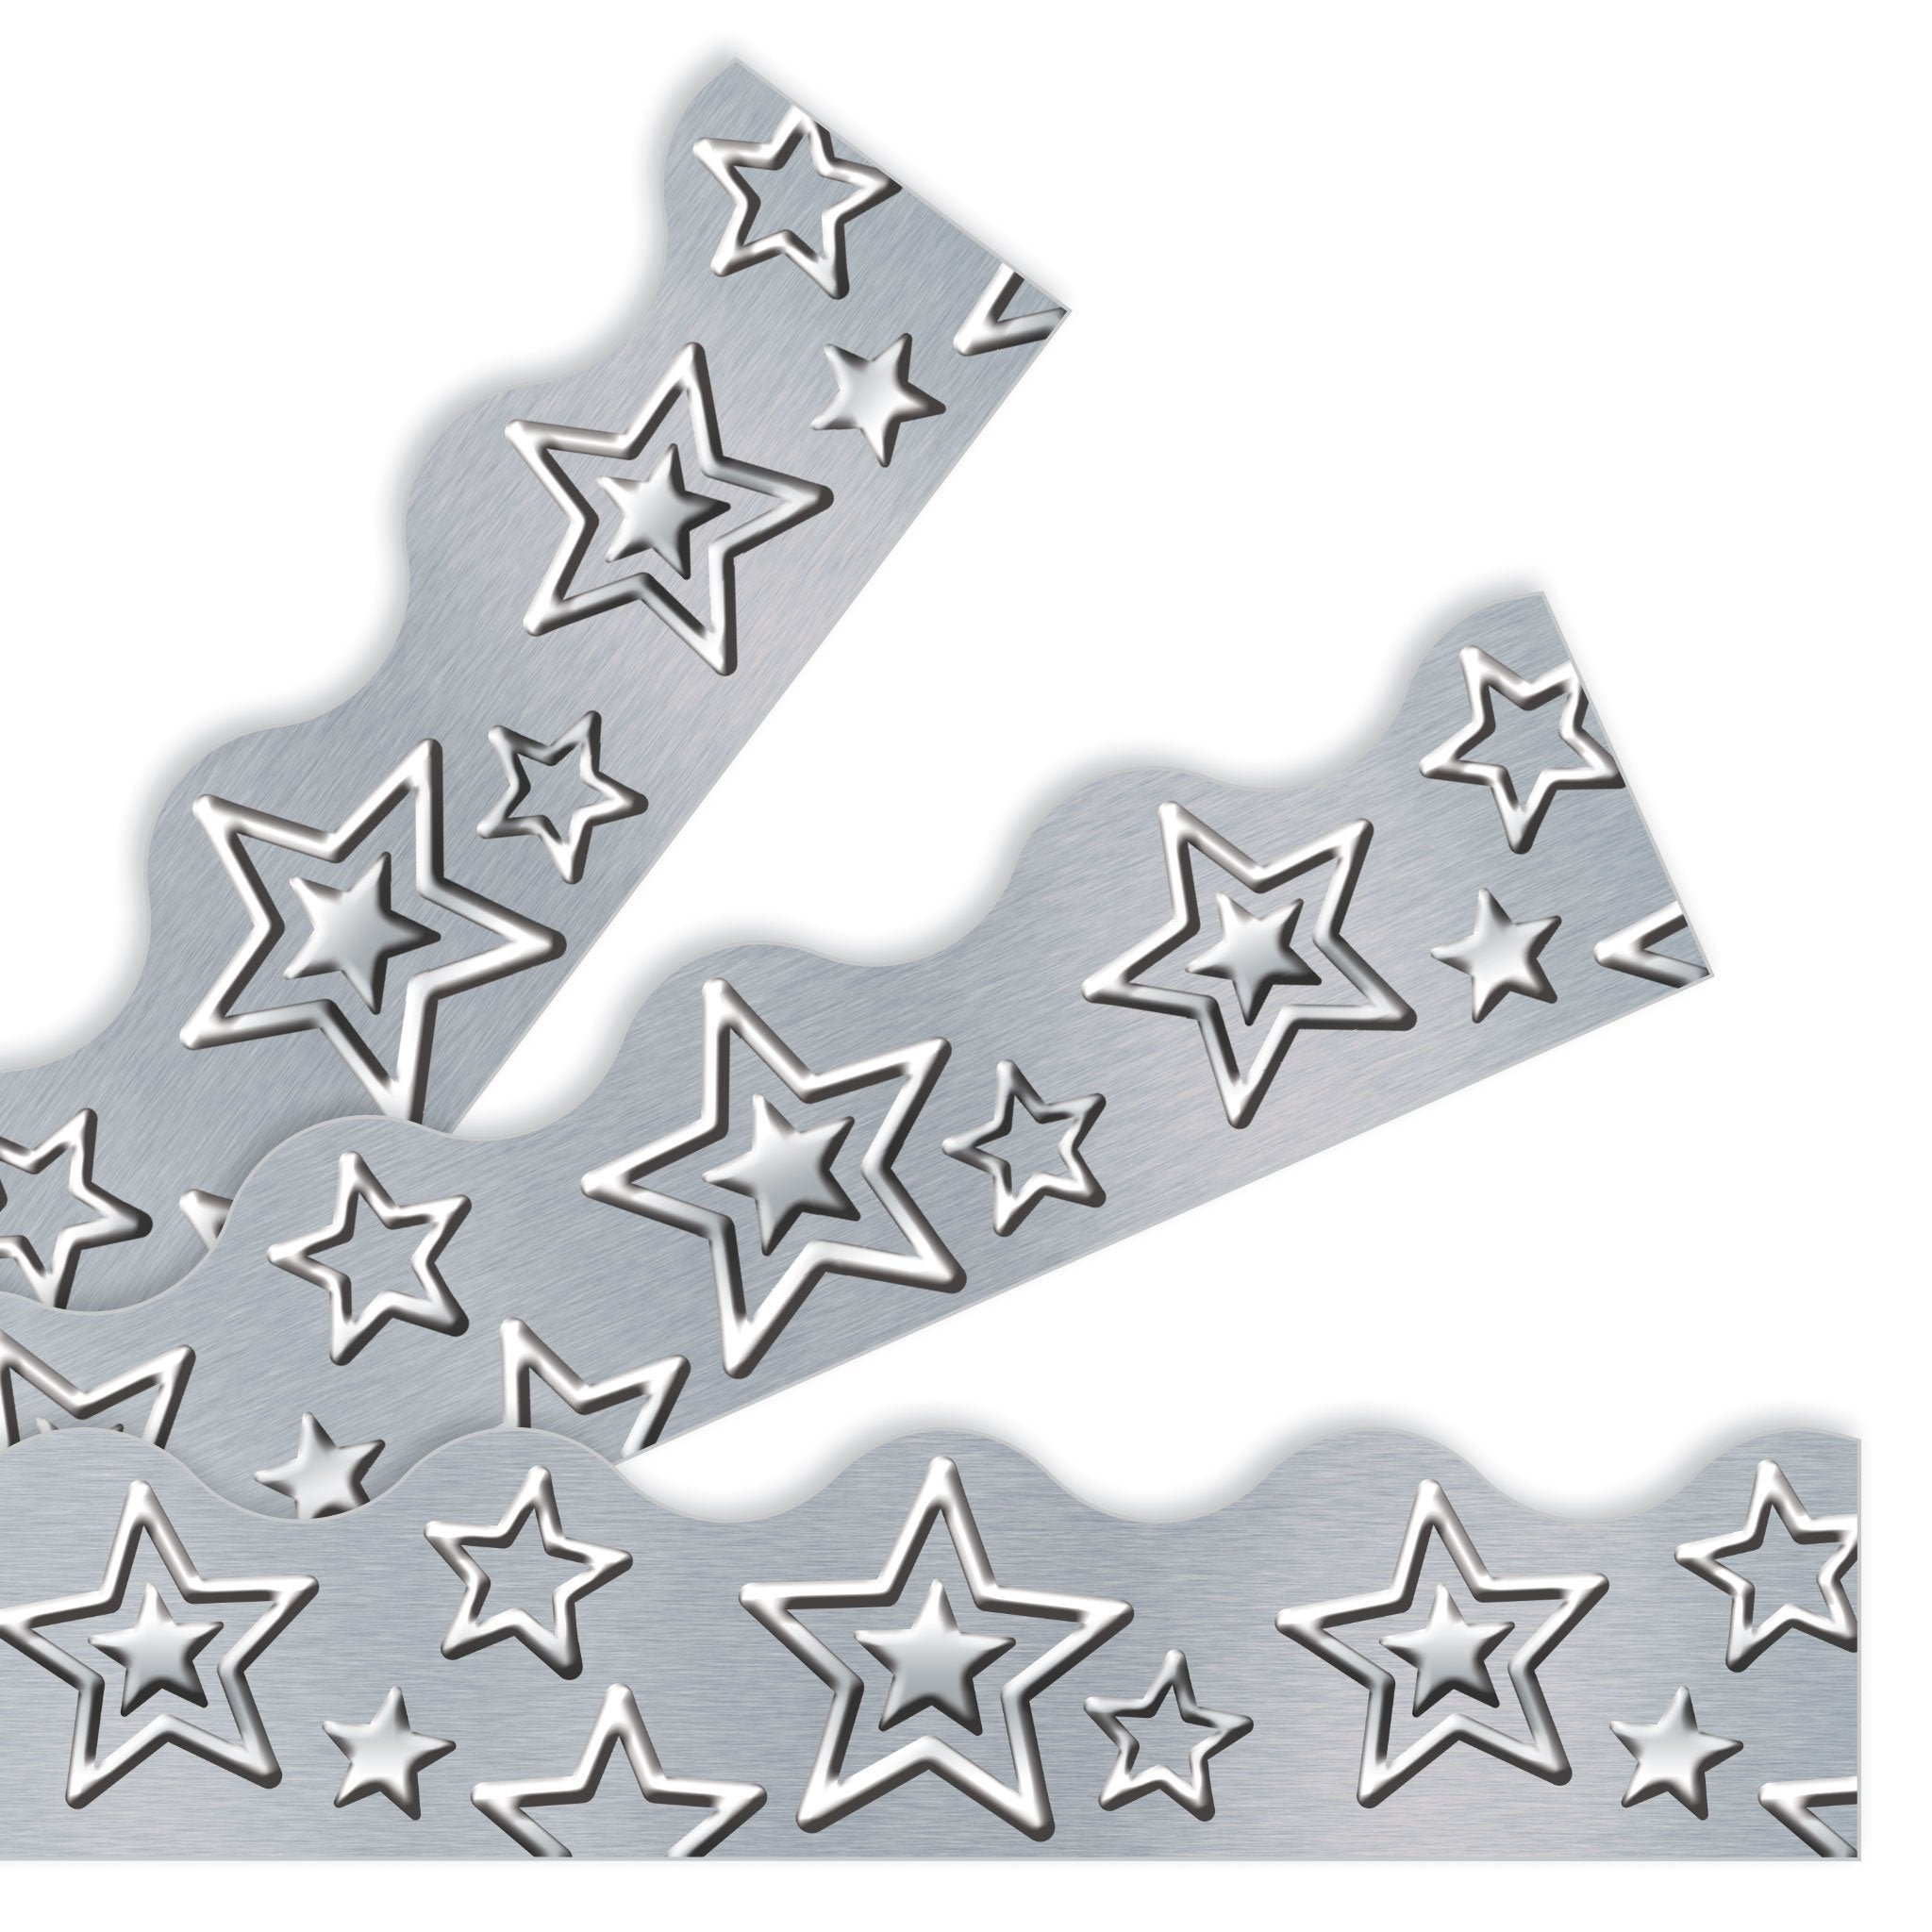 I ♥ Metal Silver Stars Borders & Trimmers